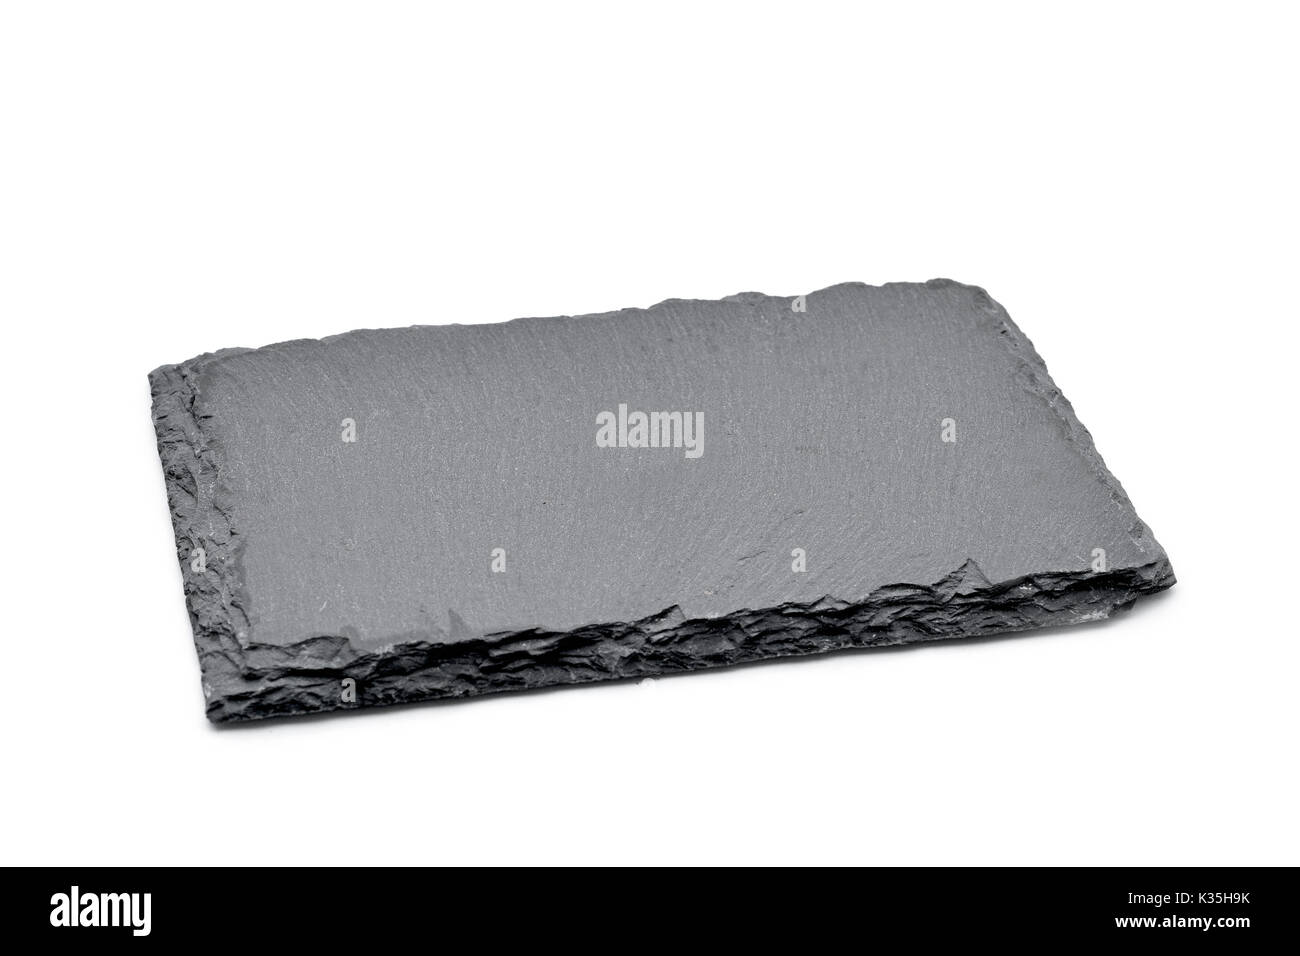 a rectangular piece of slate stone on a white background - Stock Image